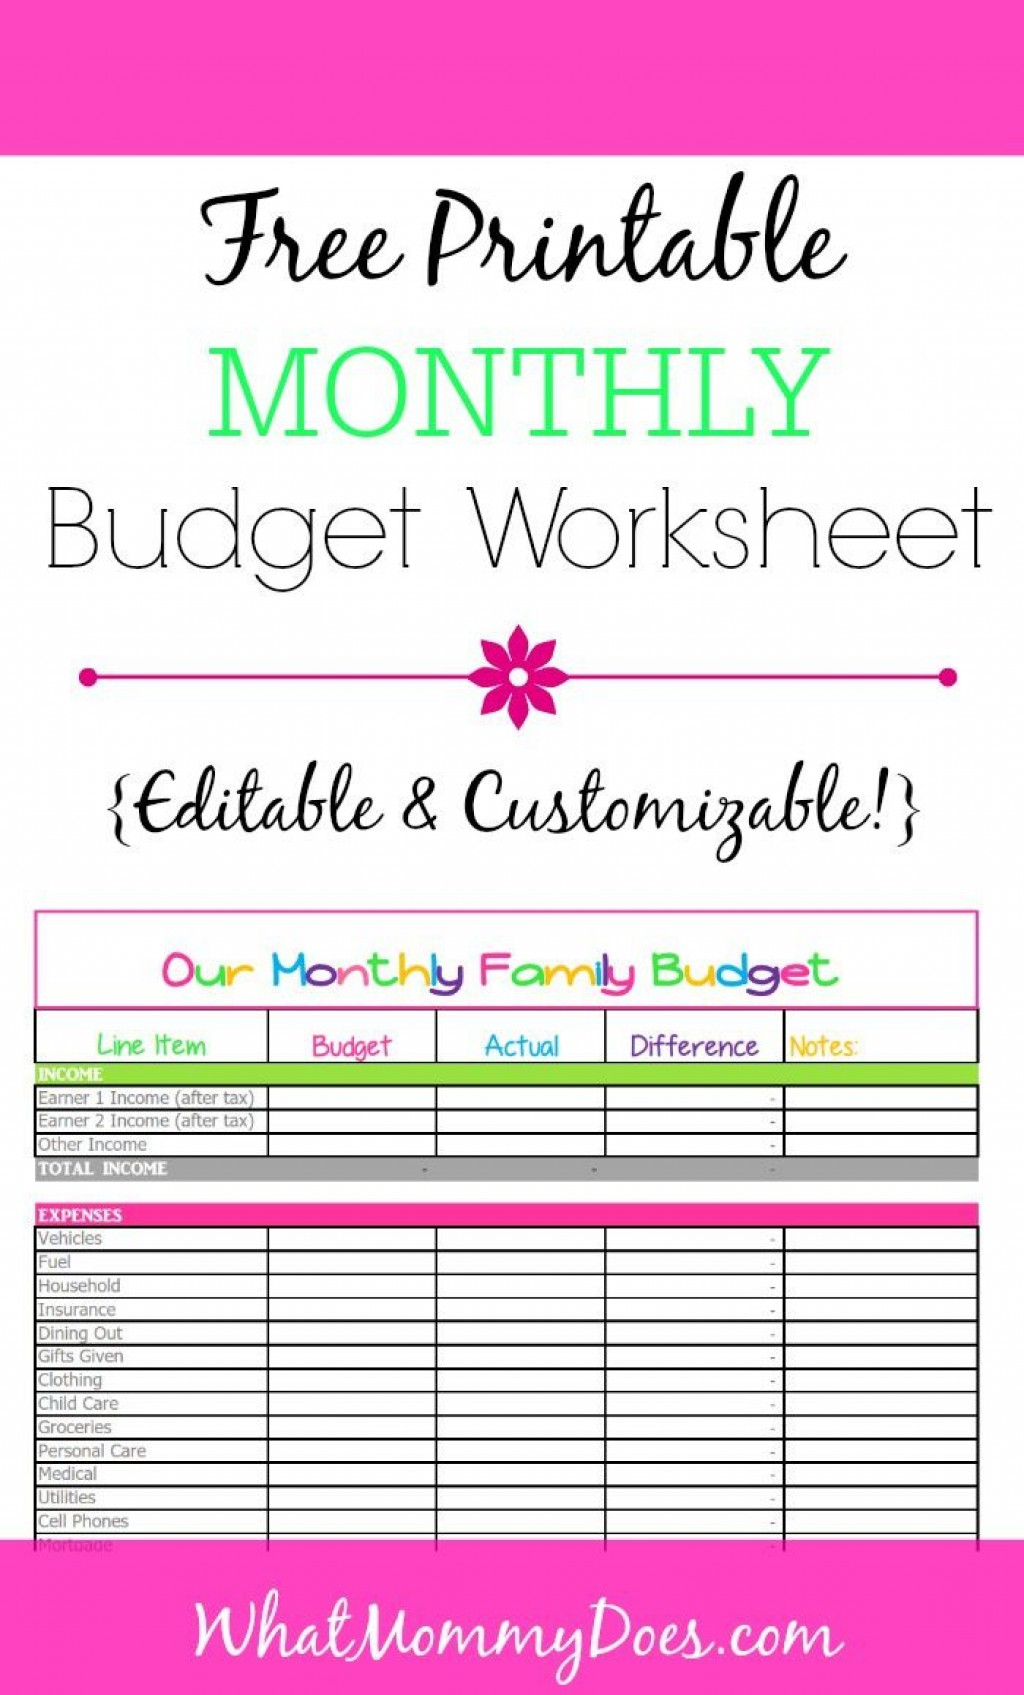 006 Remarkable Free Printable Blank Monthly Budget Sheet Image  Sheets Worksheet TemplateLarge